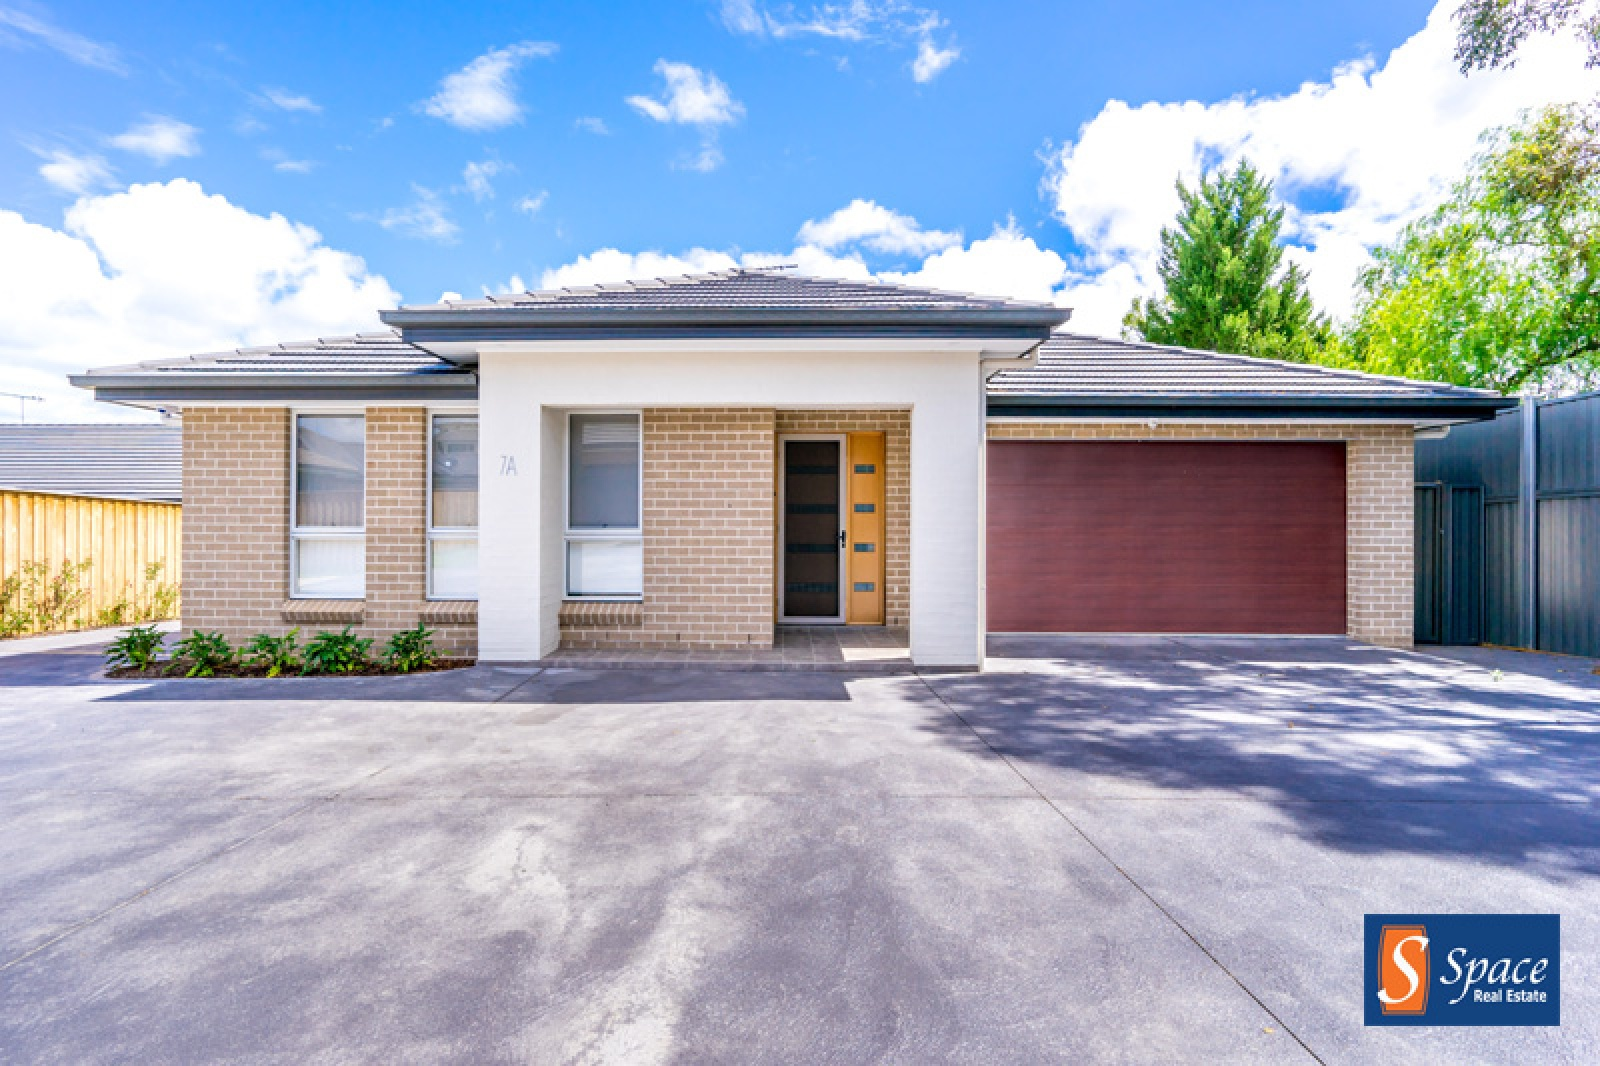 7a Irvine Street,Elderslie,NSW,4 Bedrooms Bedrooms,2 BathroomsBathrooms,House,Irvine Street,1319